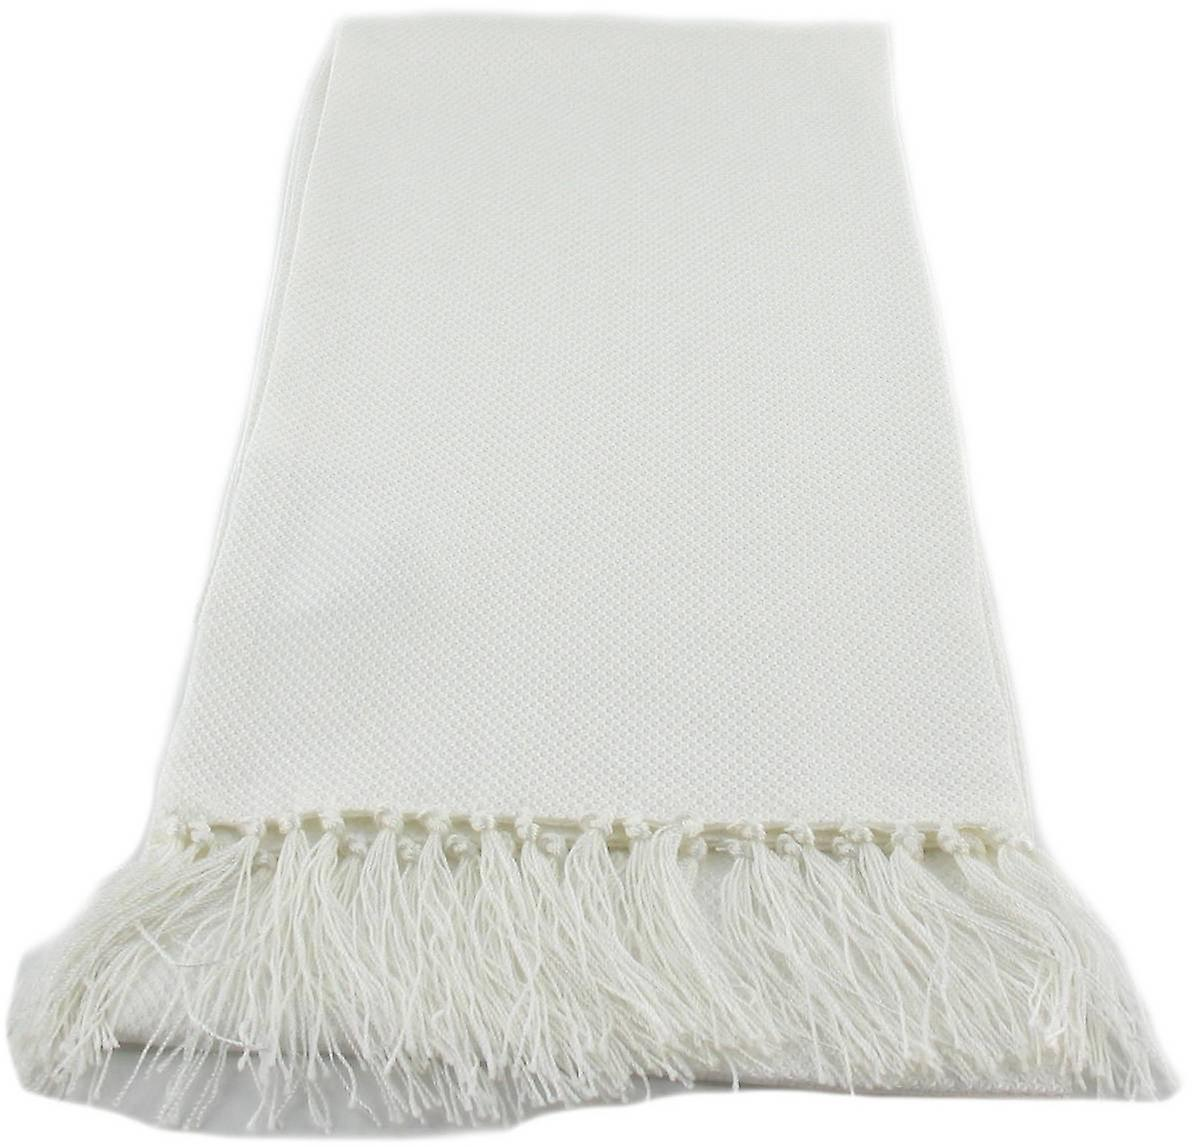 Michelsons of London Narrow Dress Silk Scarf - White